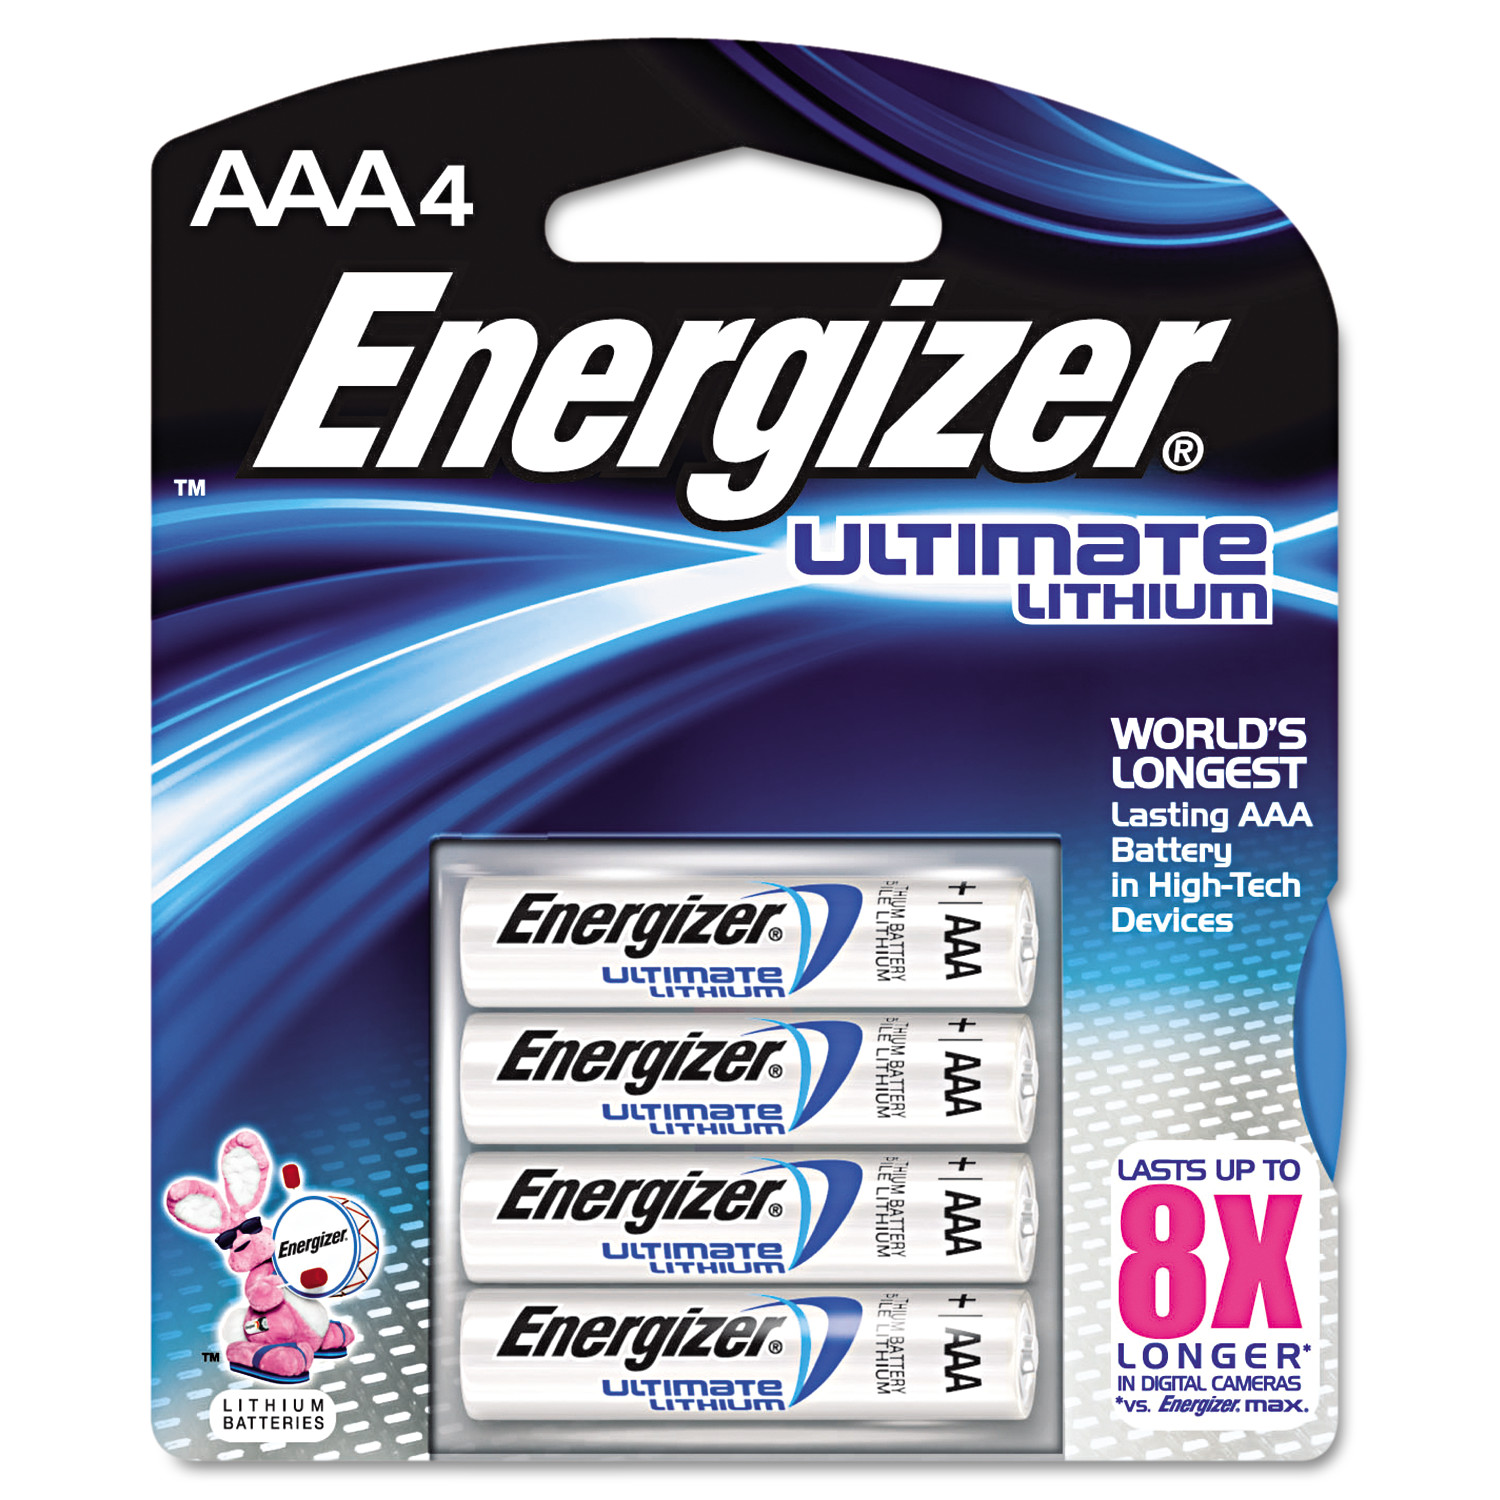 Energizer Lithium Batteries, AAA, 4/Pack